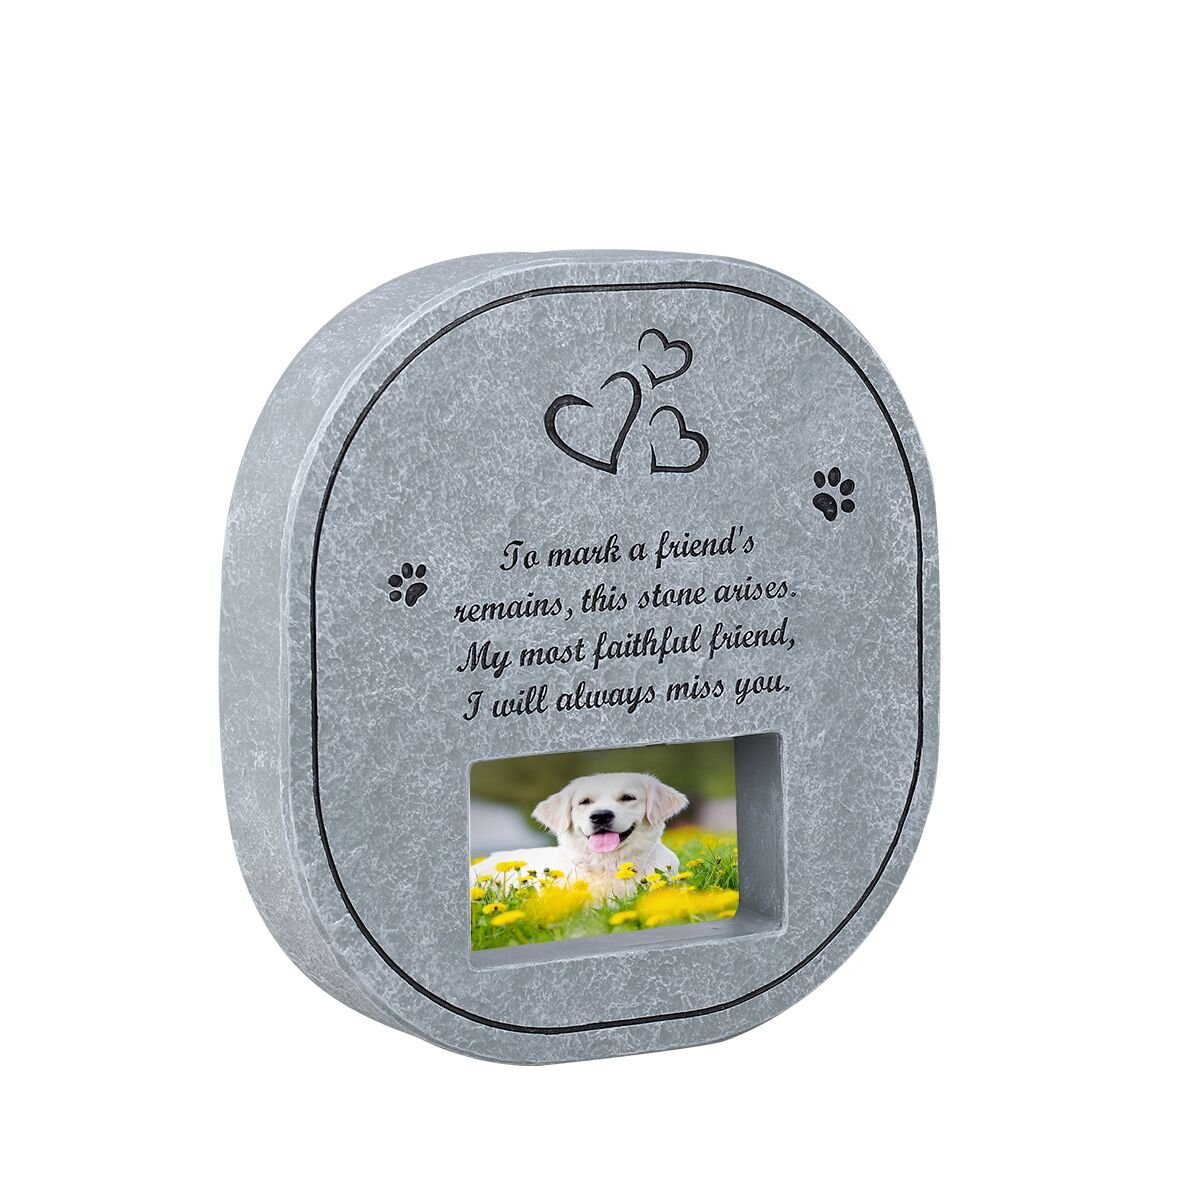 UEETEK Pet Memorial Stone Tombstone with Waterproof Photo Frame, Memorial for Loss of Dog or Cat